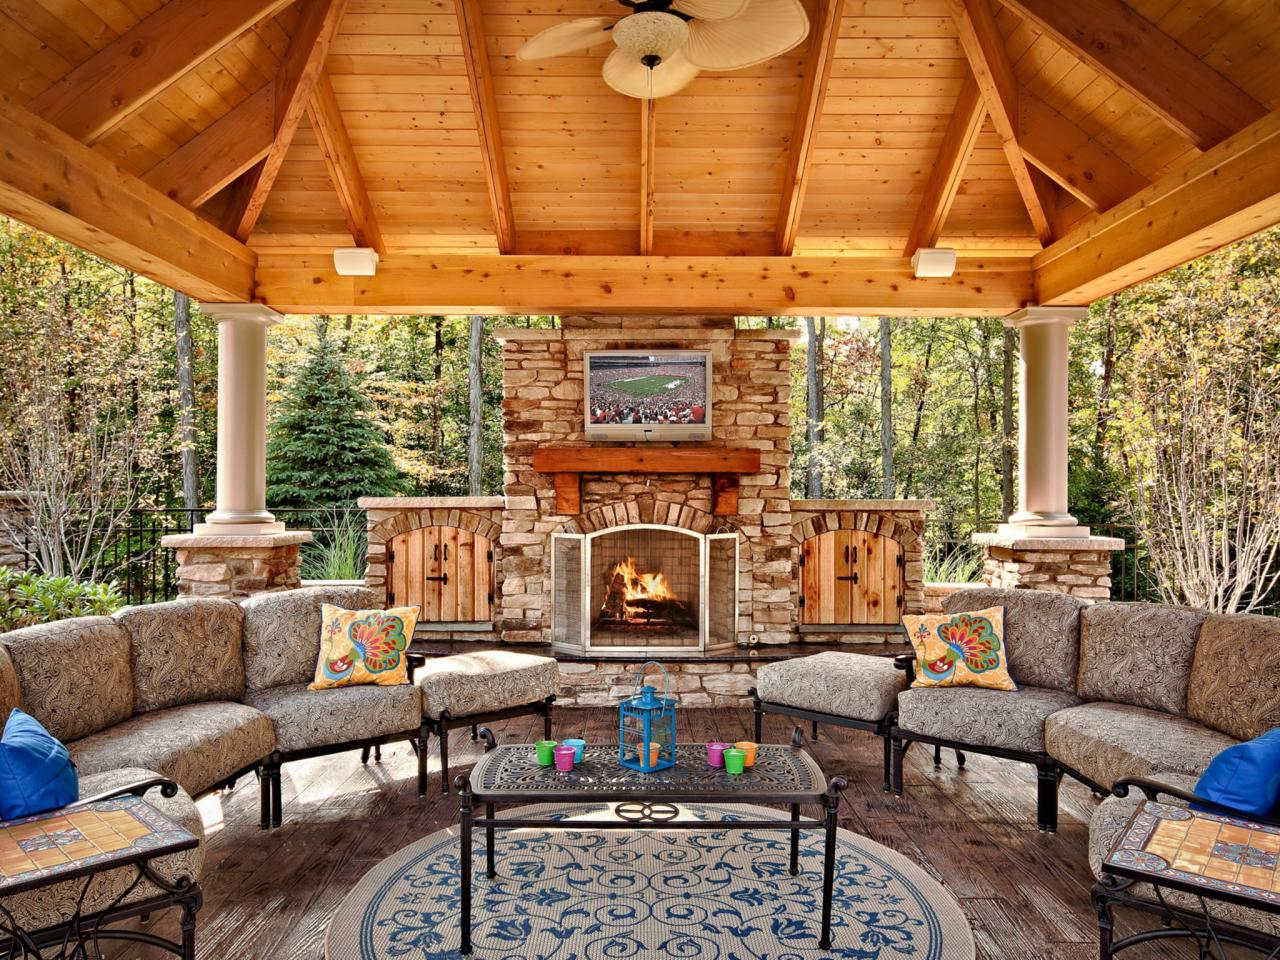 Outdoor fireplace plans hgtv for Plans for gazebo with fireplace